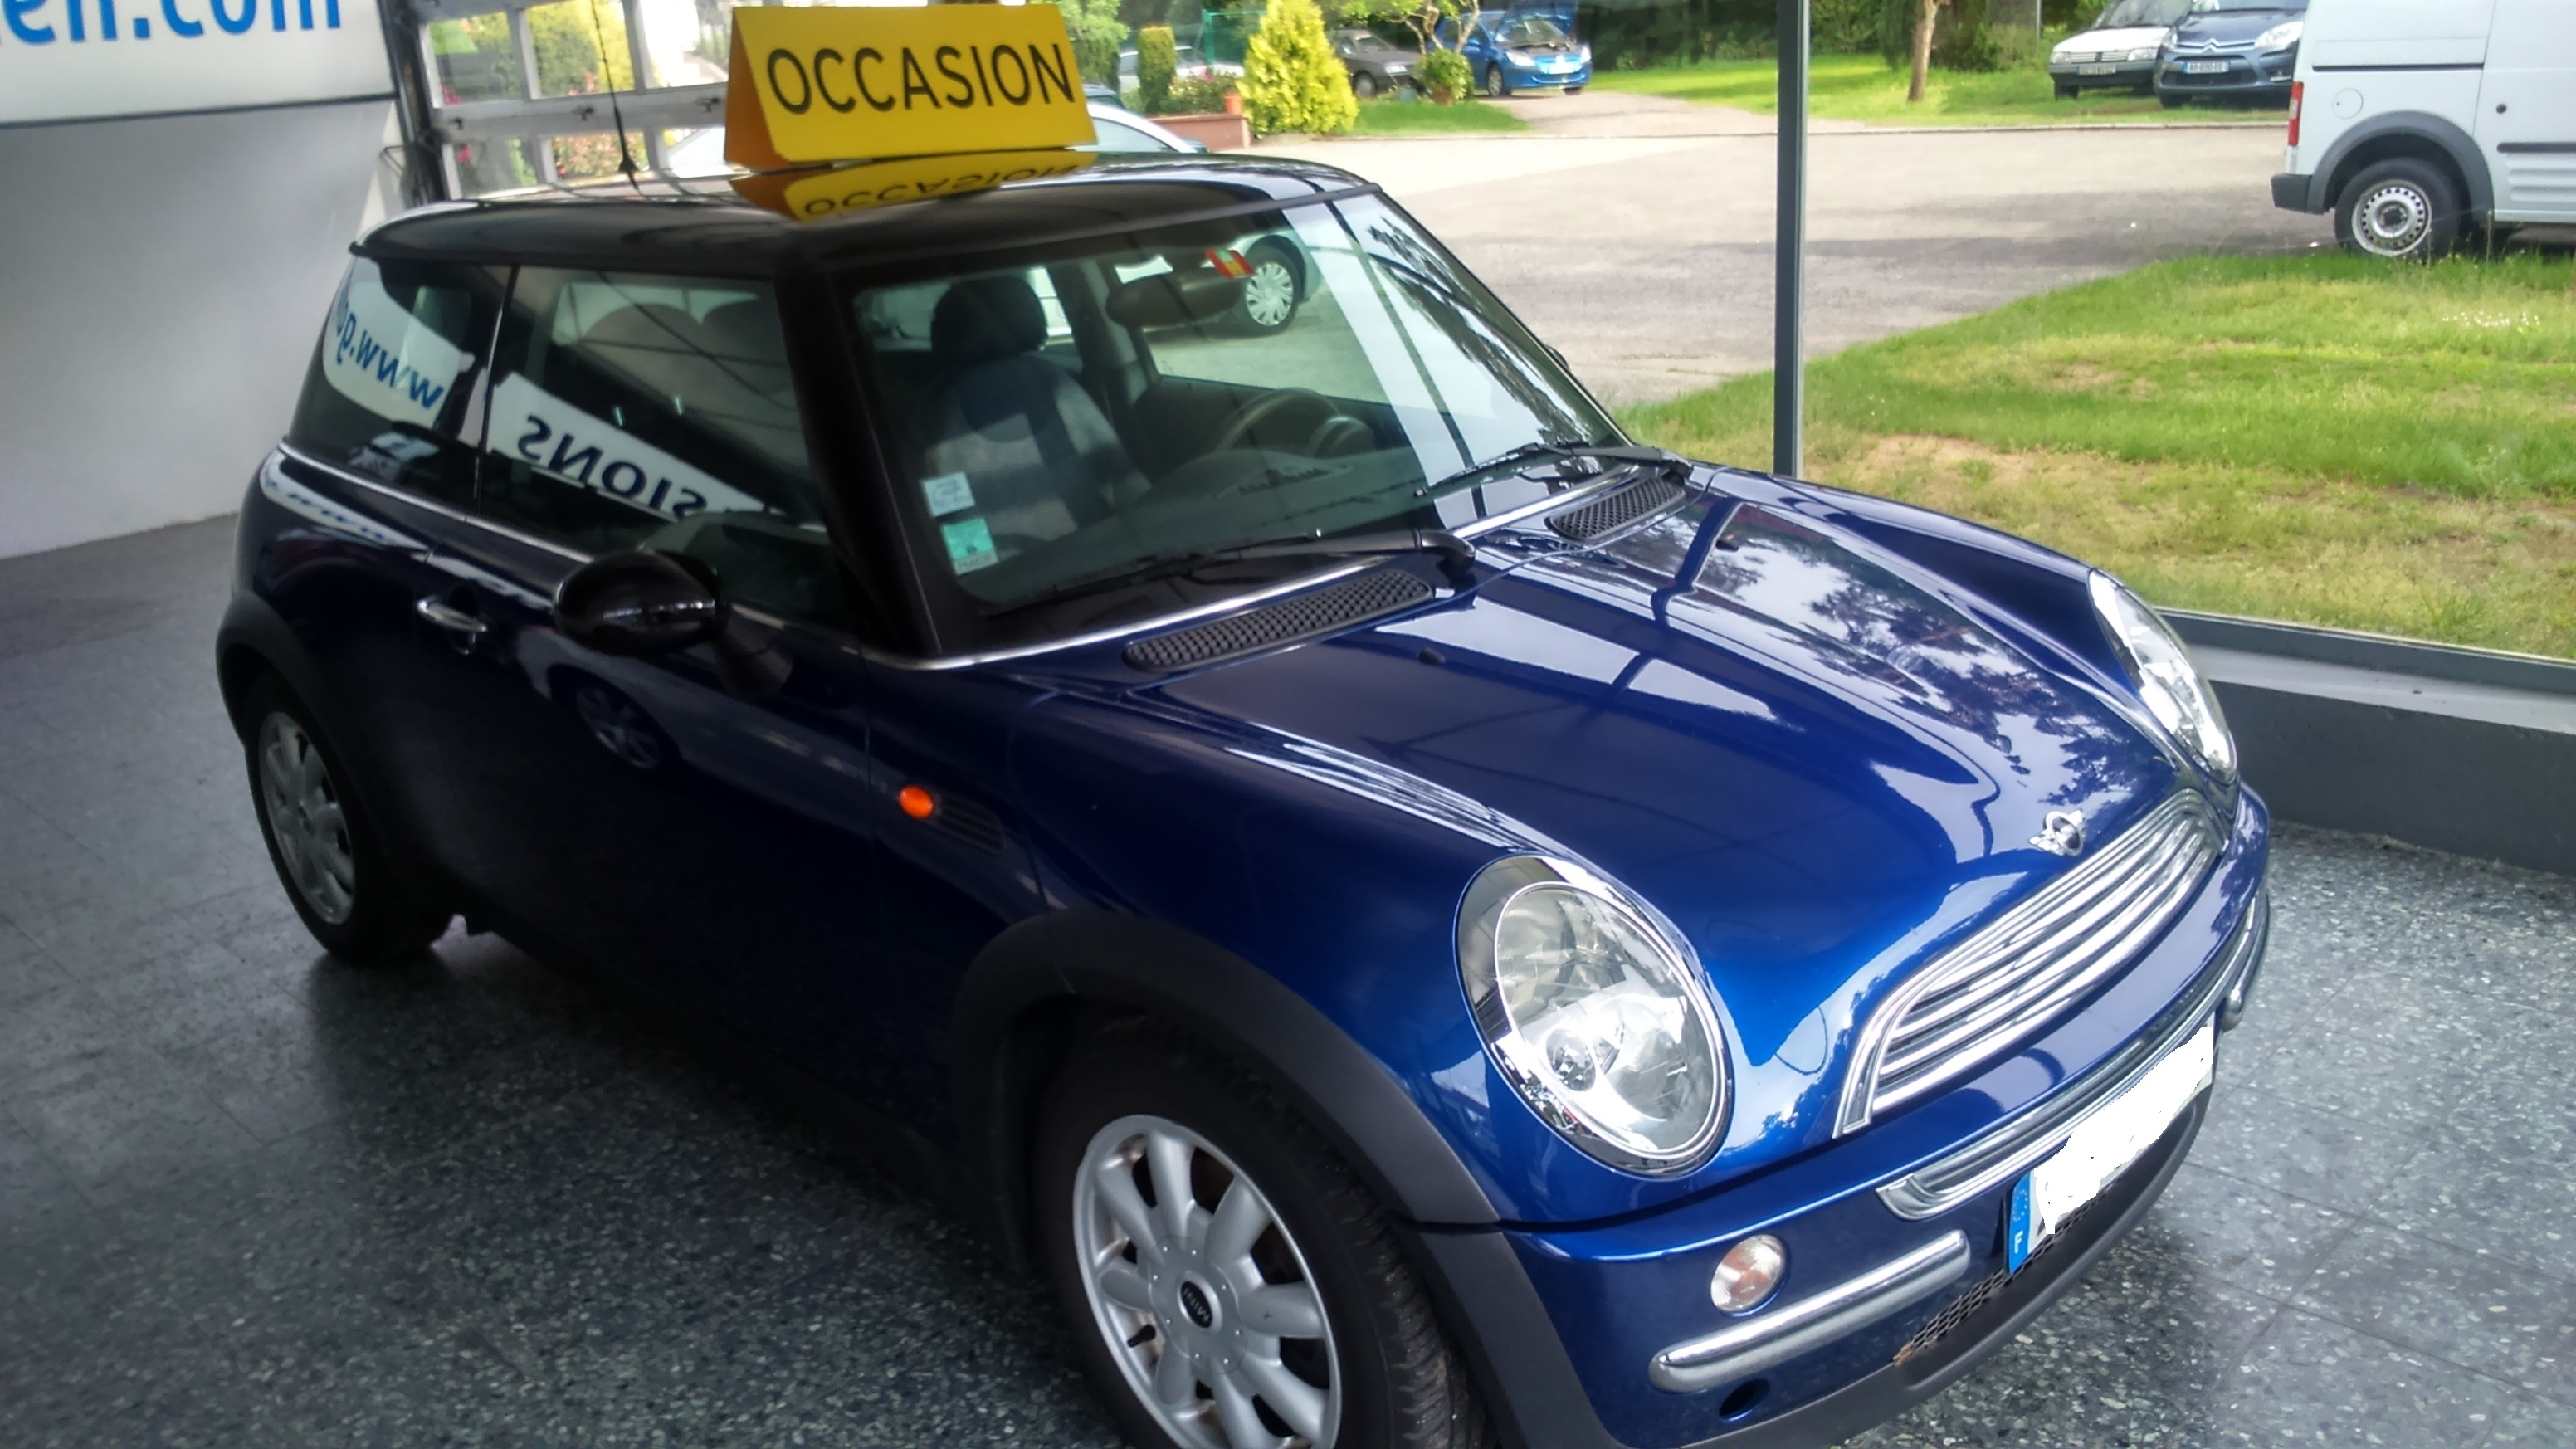 occasion arrivage mini cooper garage carlen